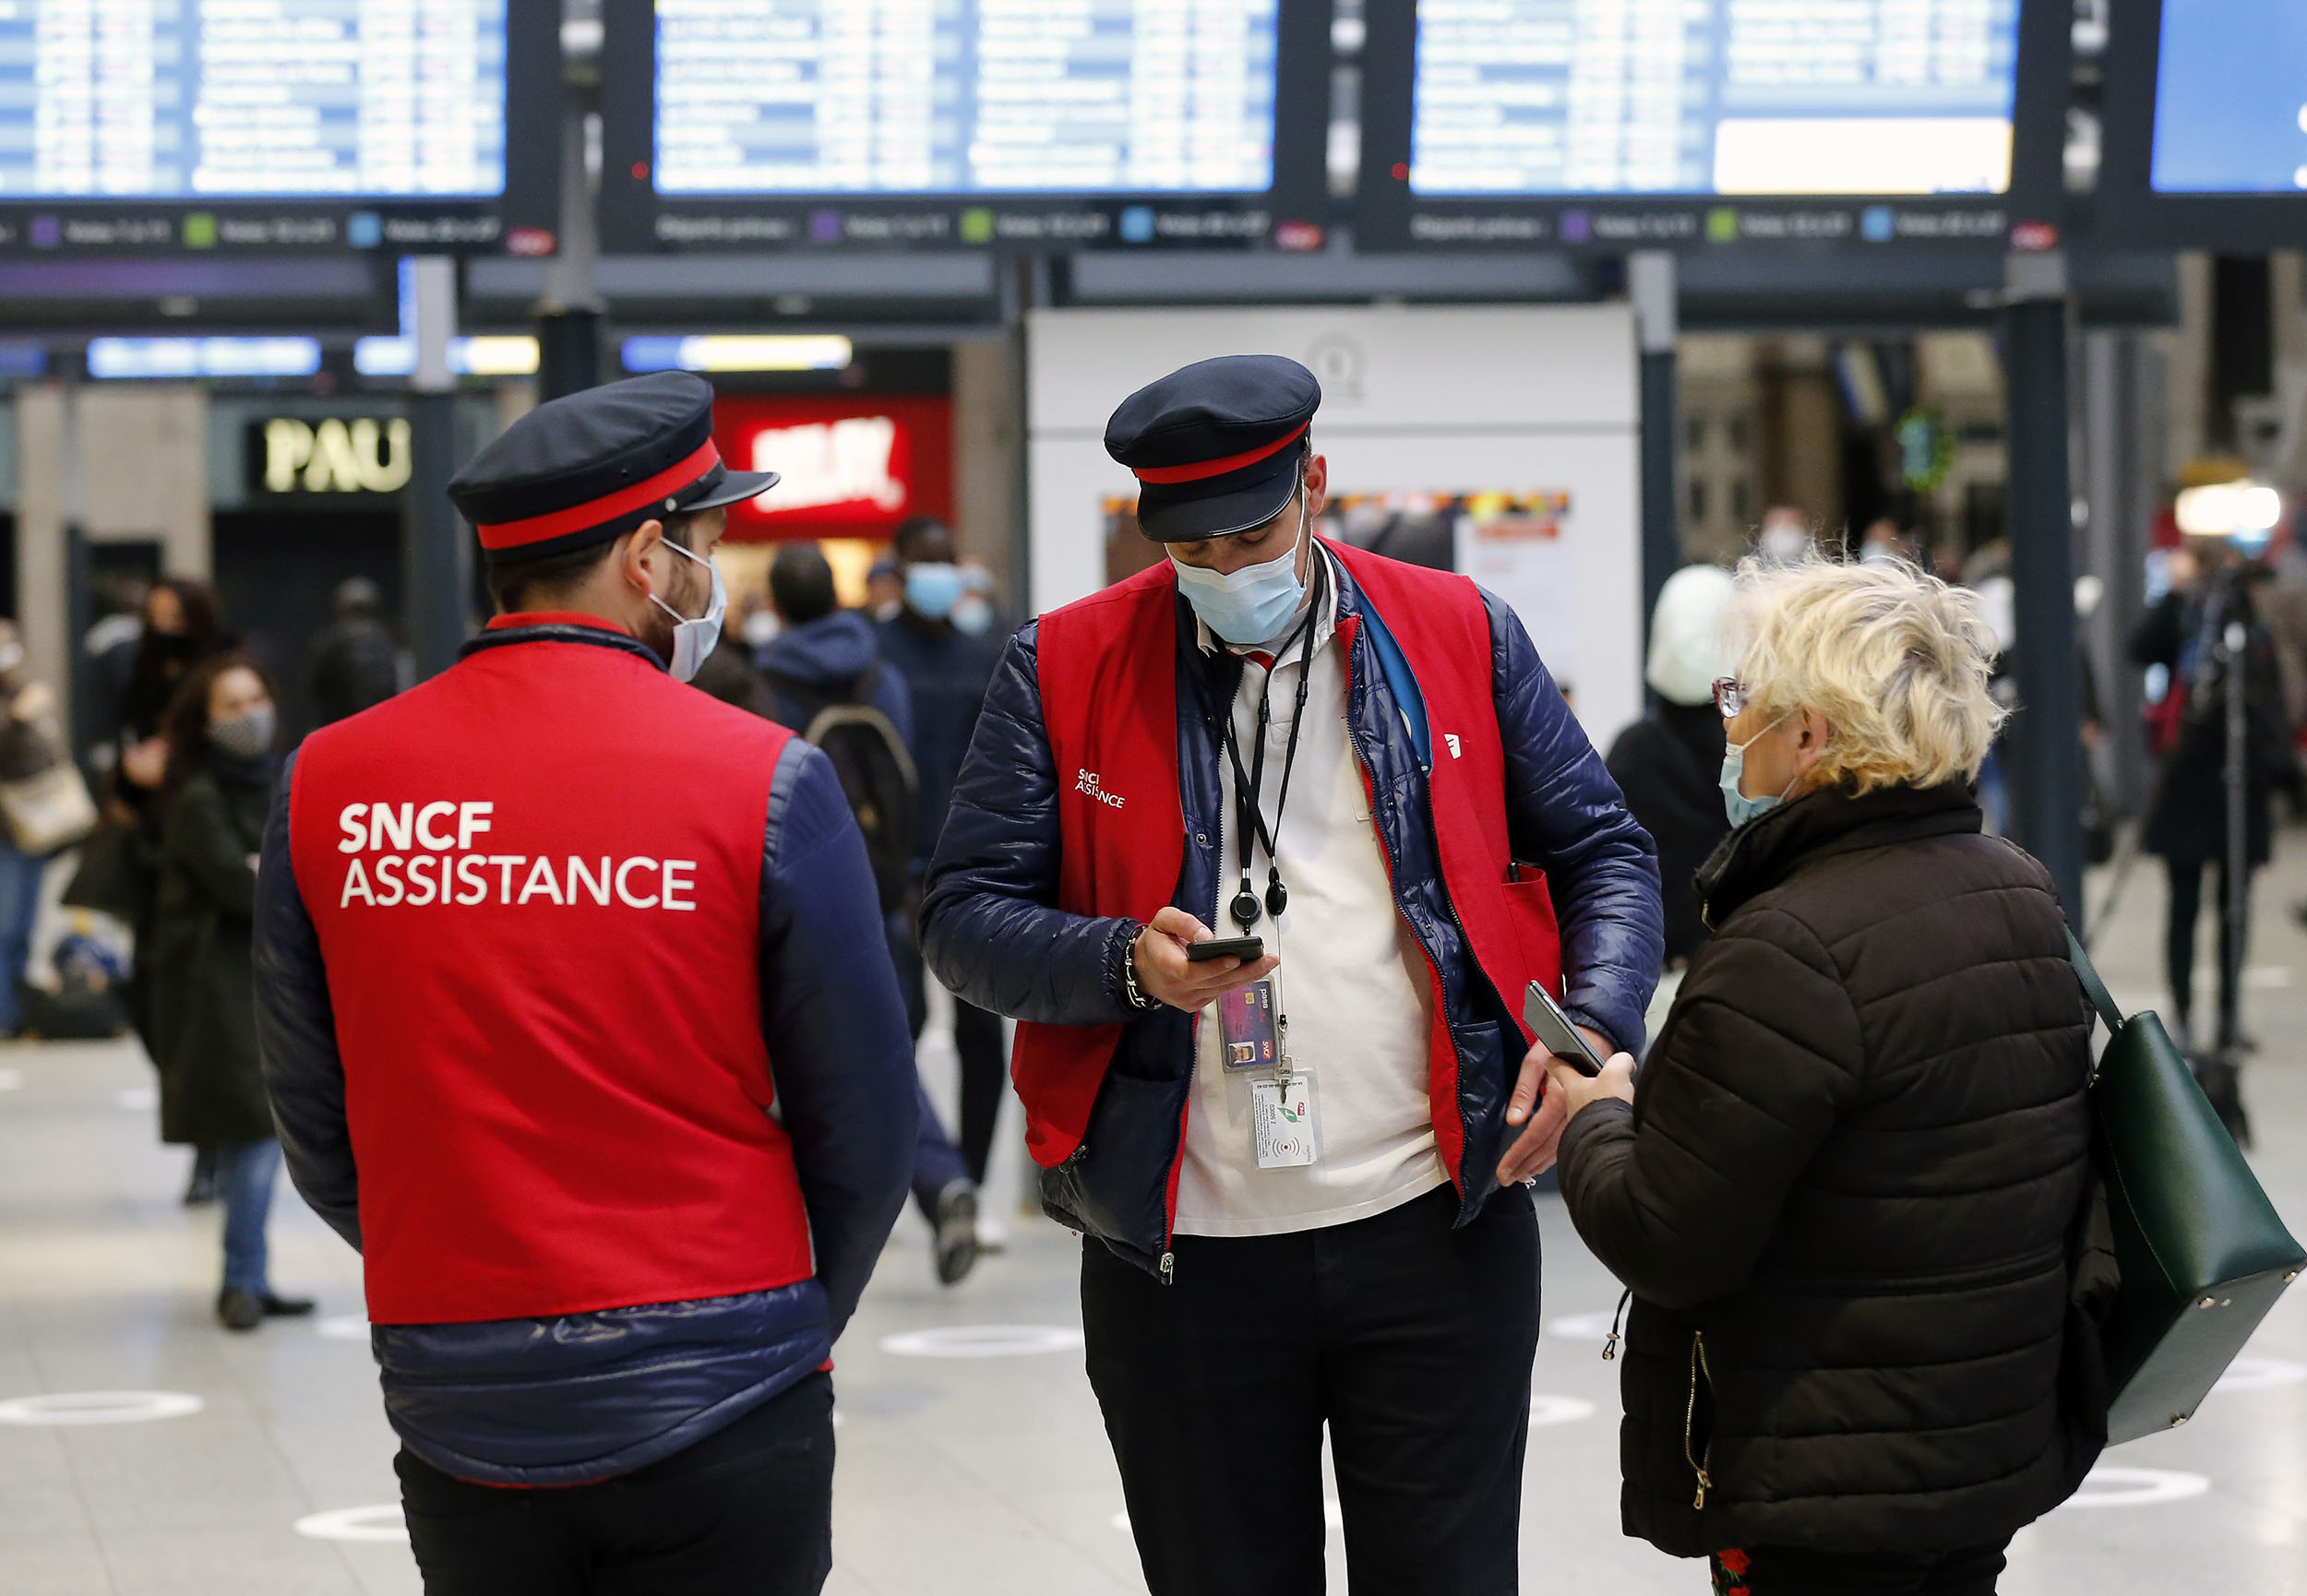 Rail company employees wear protective face masks at the Gare Saint Lazare railway station in Paris on Monday.